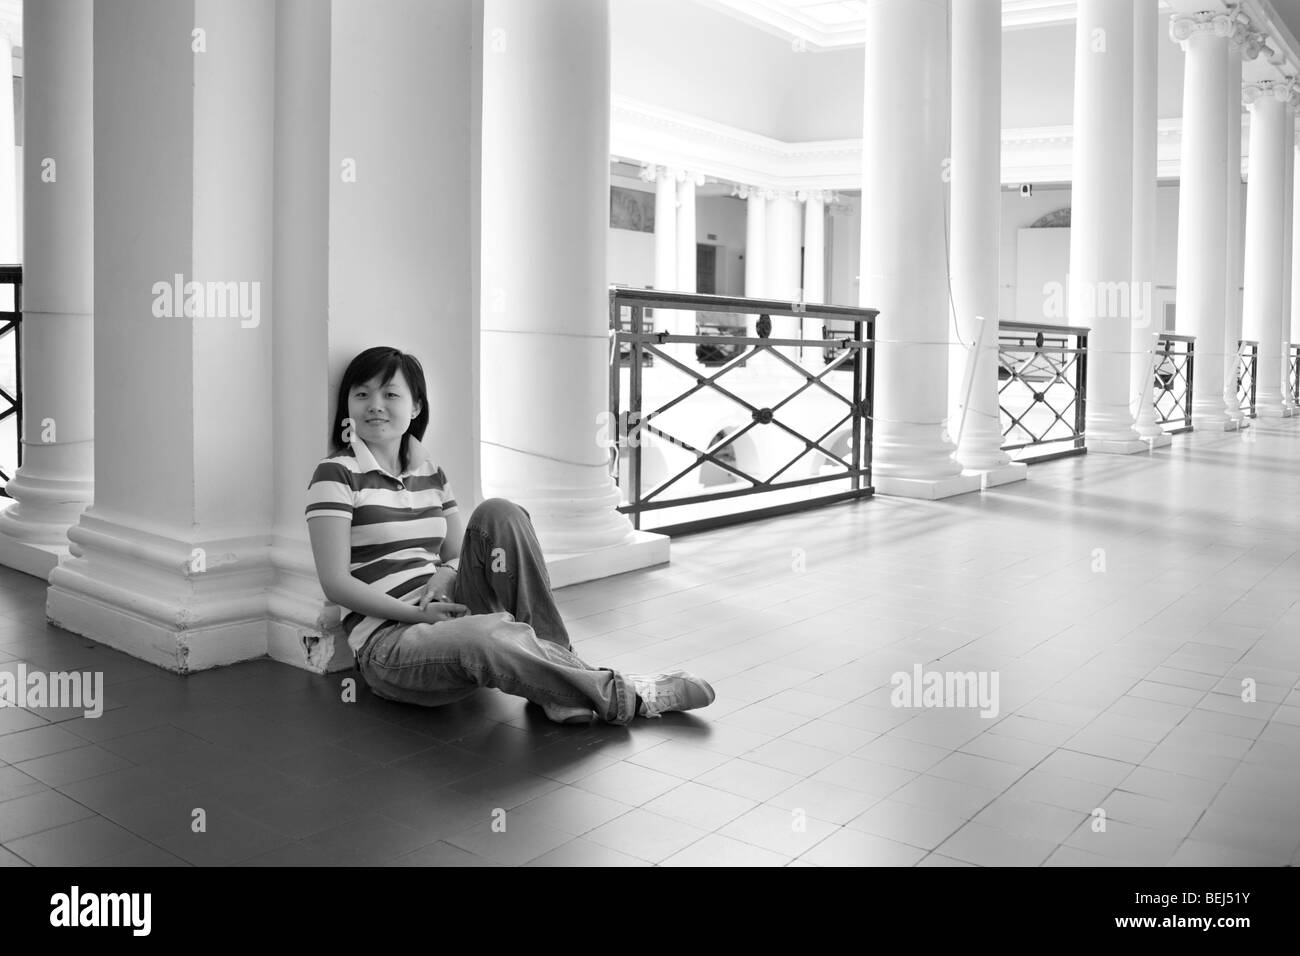 Young Chinese girl sitting in a very grand upper balcony with columns. - Stock Image